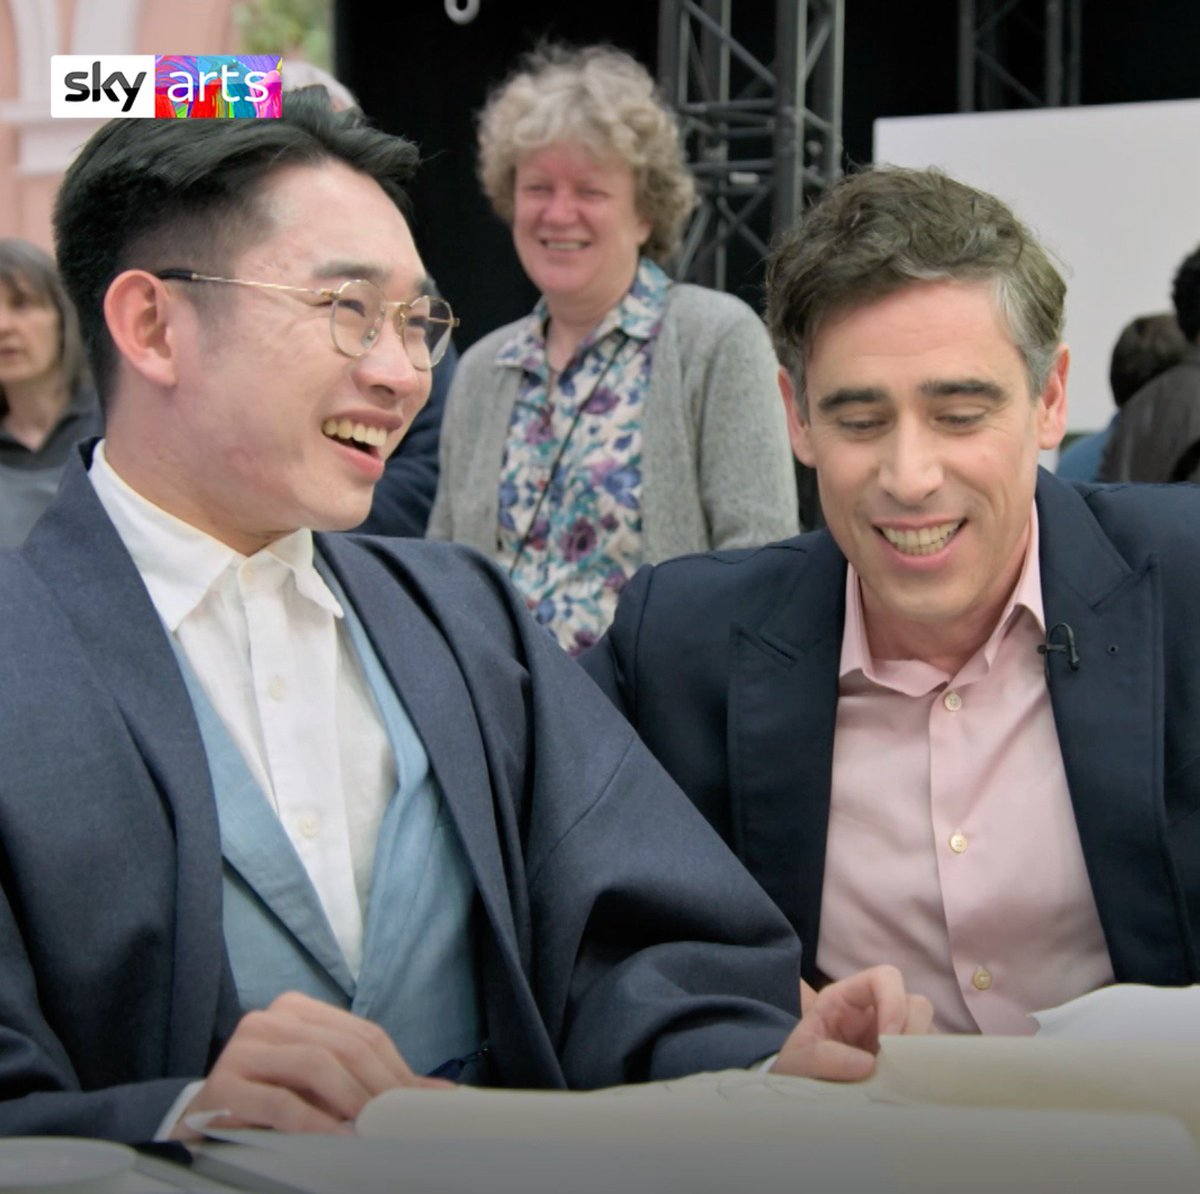 On tonight's #PortraitArtistOfTheYear @StephenMangan misshears one of the contestants - it was definitely 'holes' Stephen - 😂. And the three sitters, @AdrianLester, @thenitinsawhney and @SophieEB are wowed by our nine artists 🎨